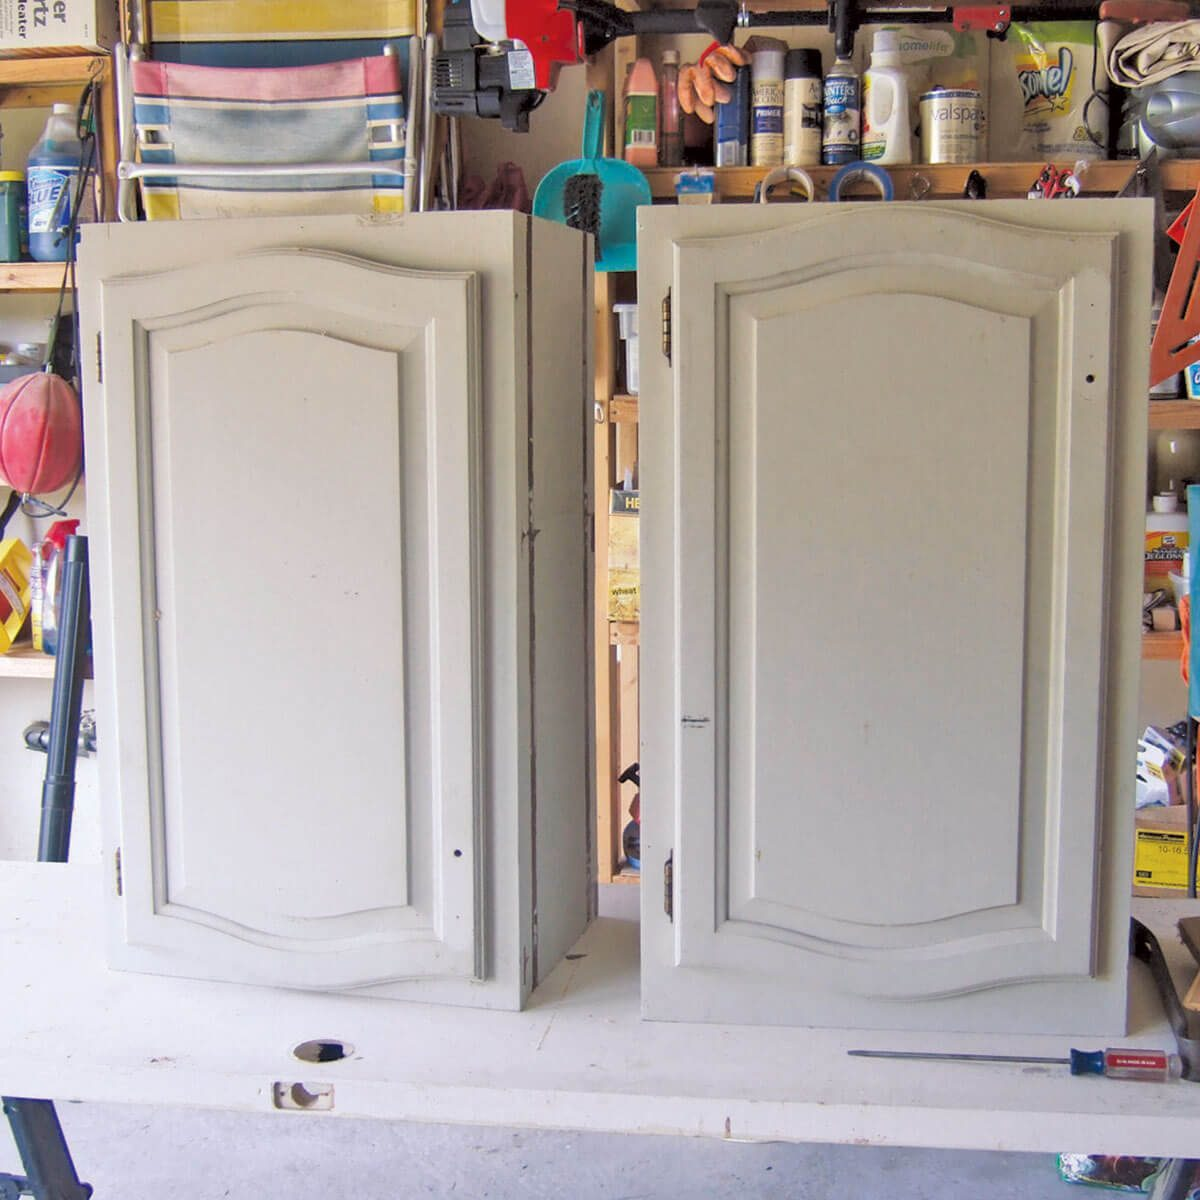 Repurposed second-hand cabinets